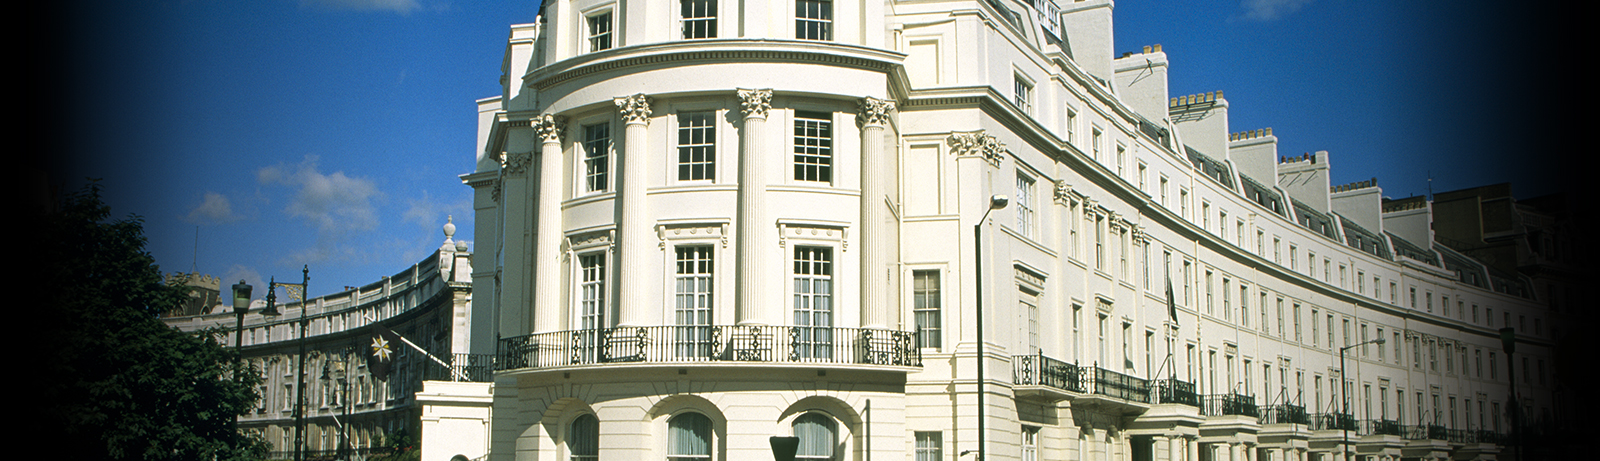 Location London Property Ltd | Belgravia